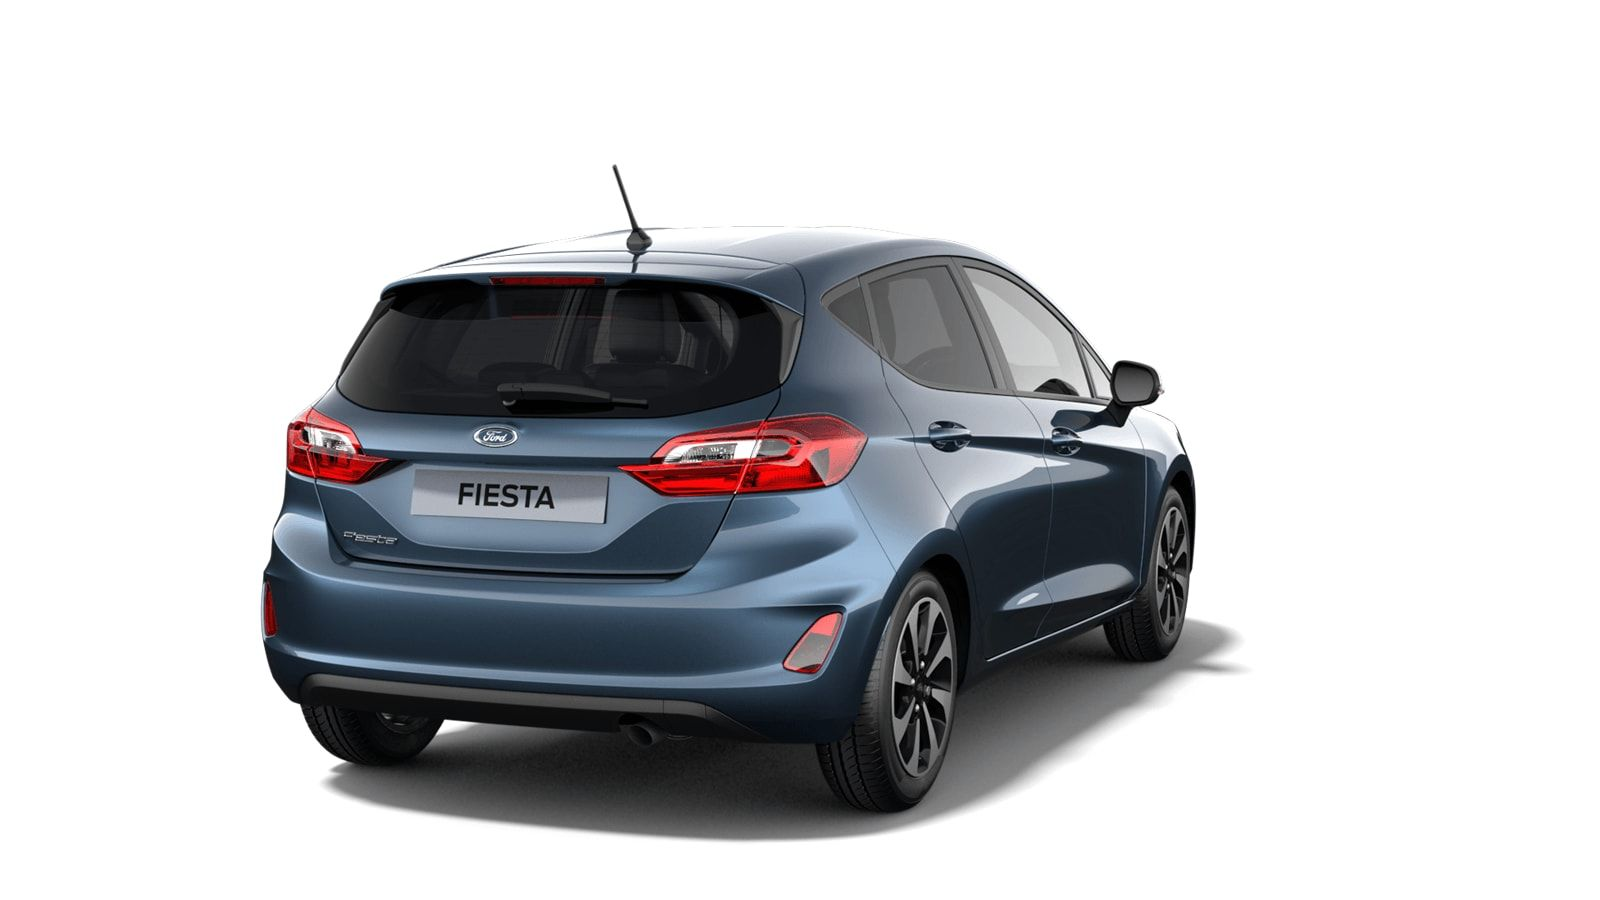 """Nieuw Ford All-new ford fiesta Connected 1.0i EcoBoost 95pk / 70kW M6 - 5d JKC - Metaalkleur """"Chrome Blue"""" 3"""